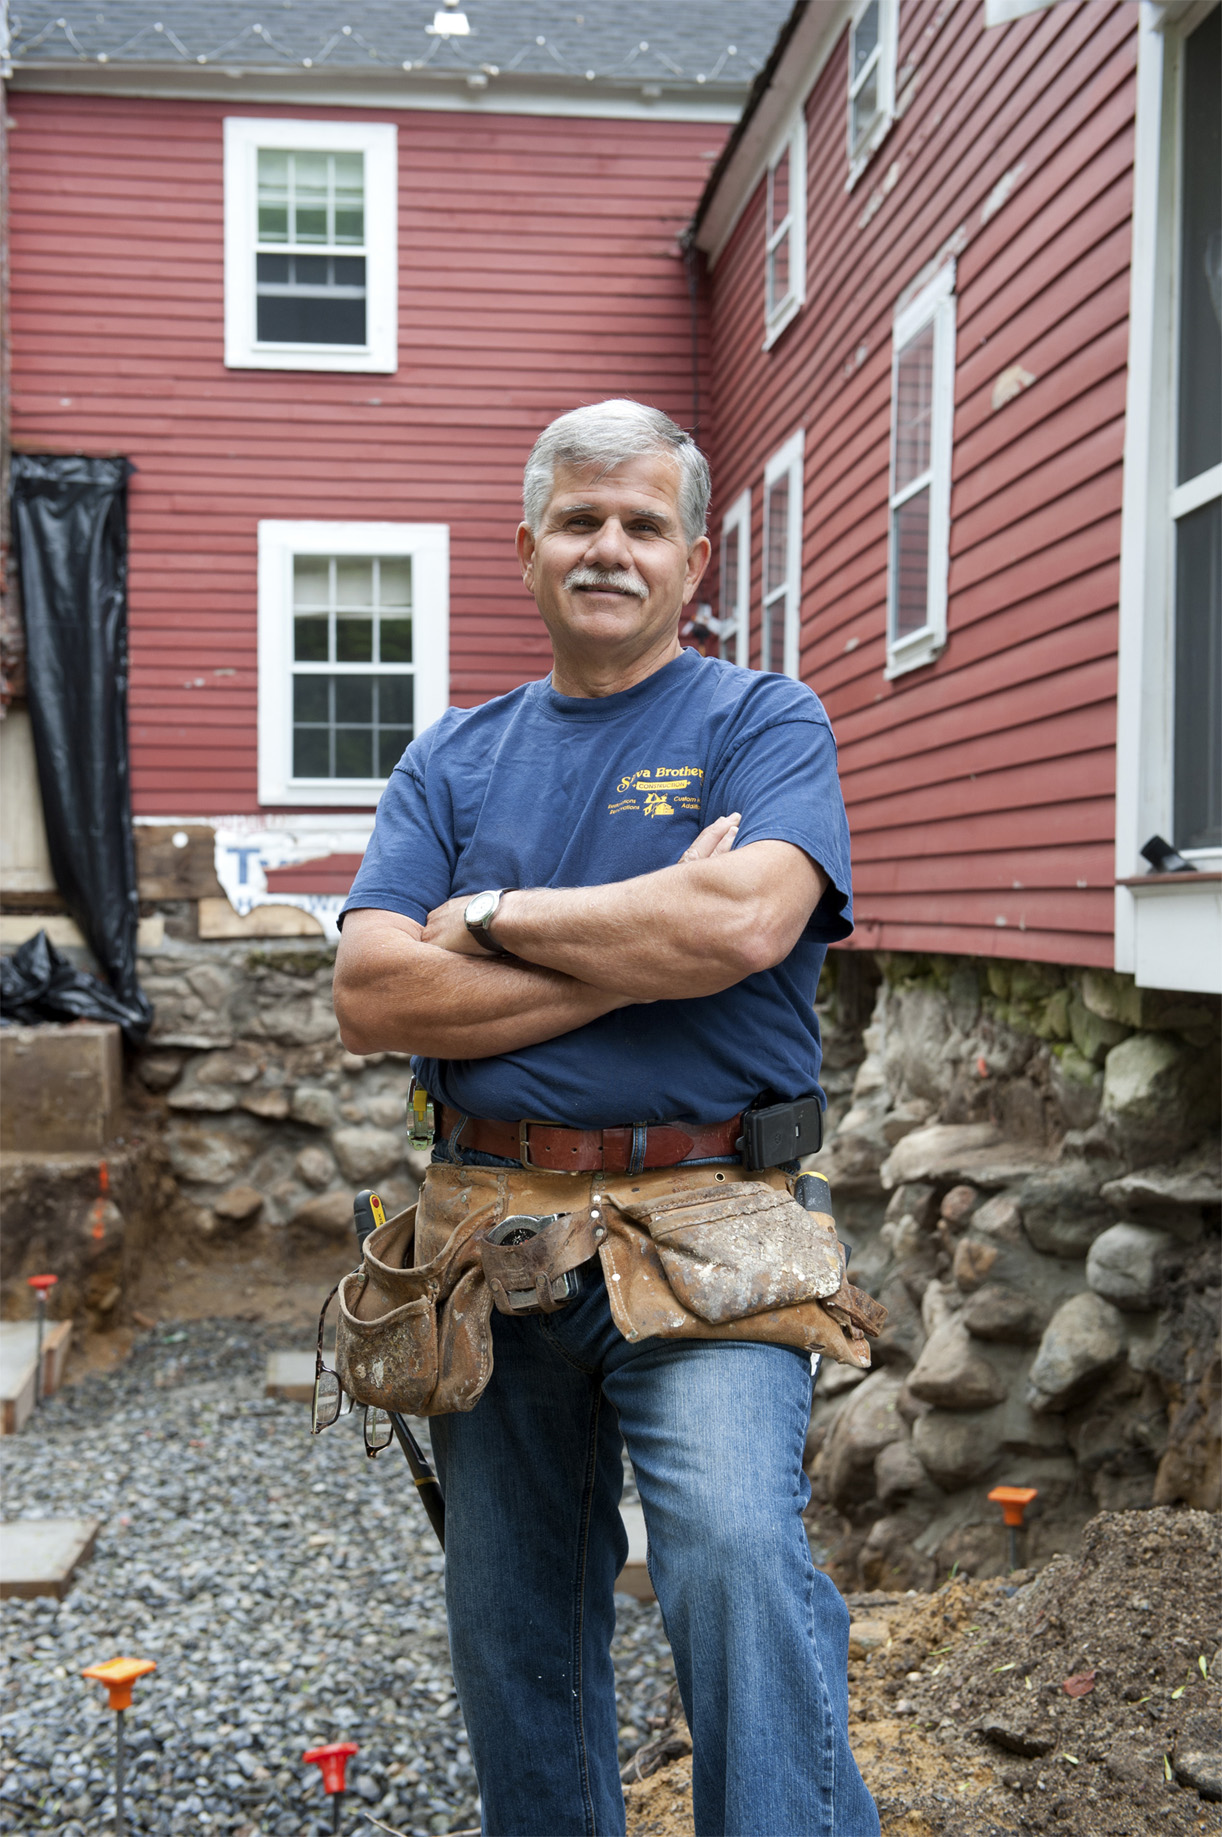 Tom Silva T-shirt from This Old House $1.95 online deal